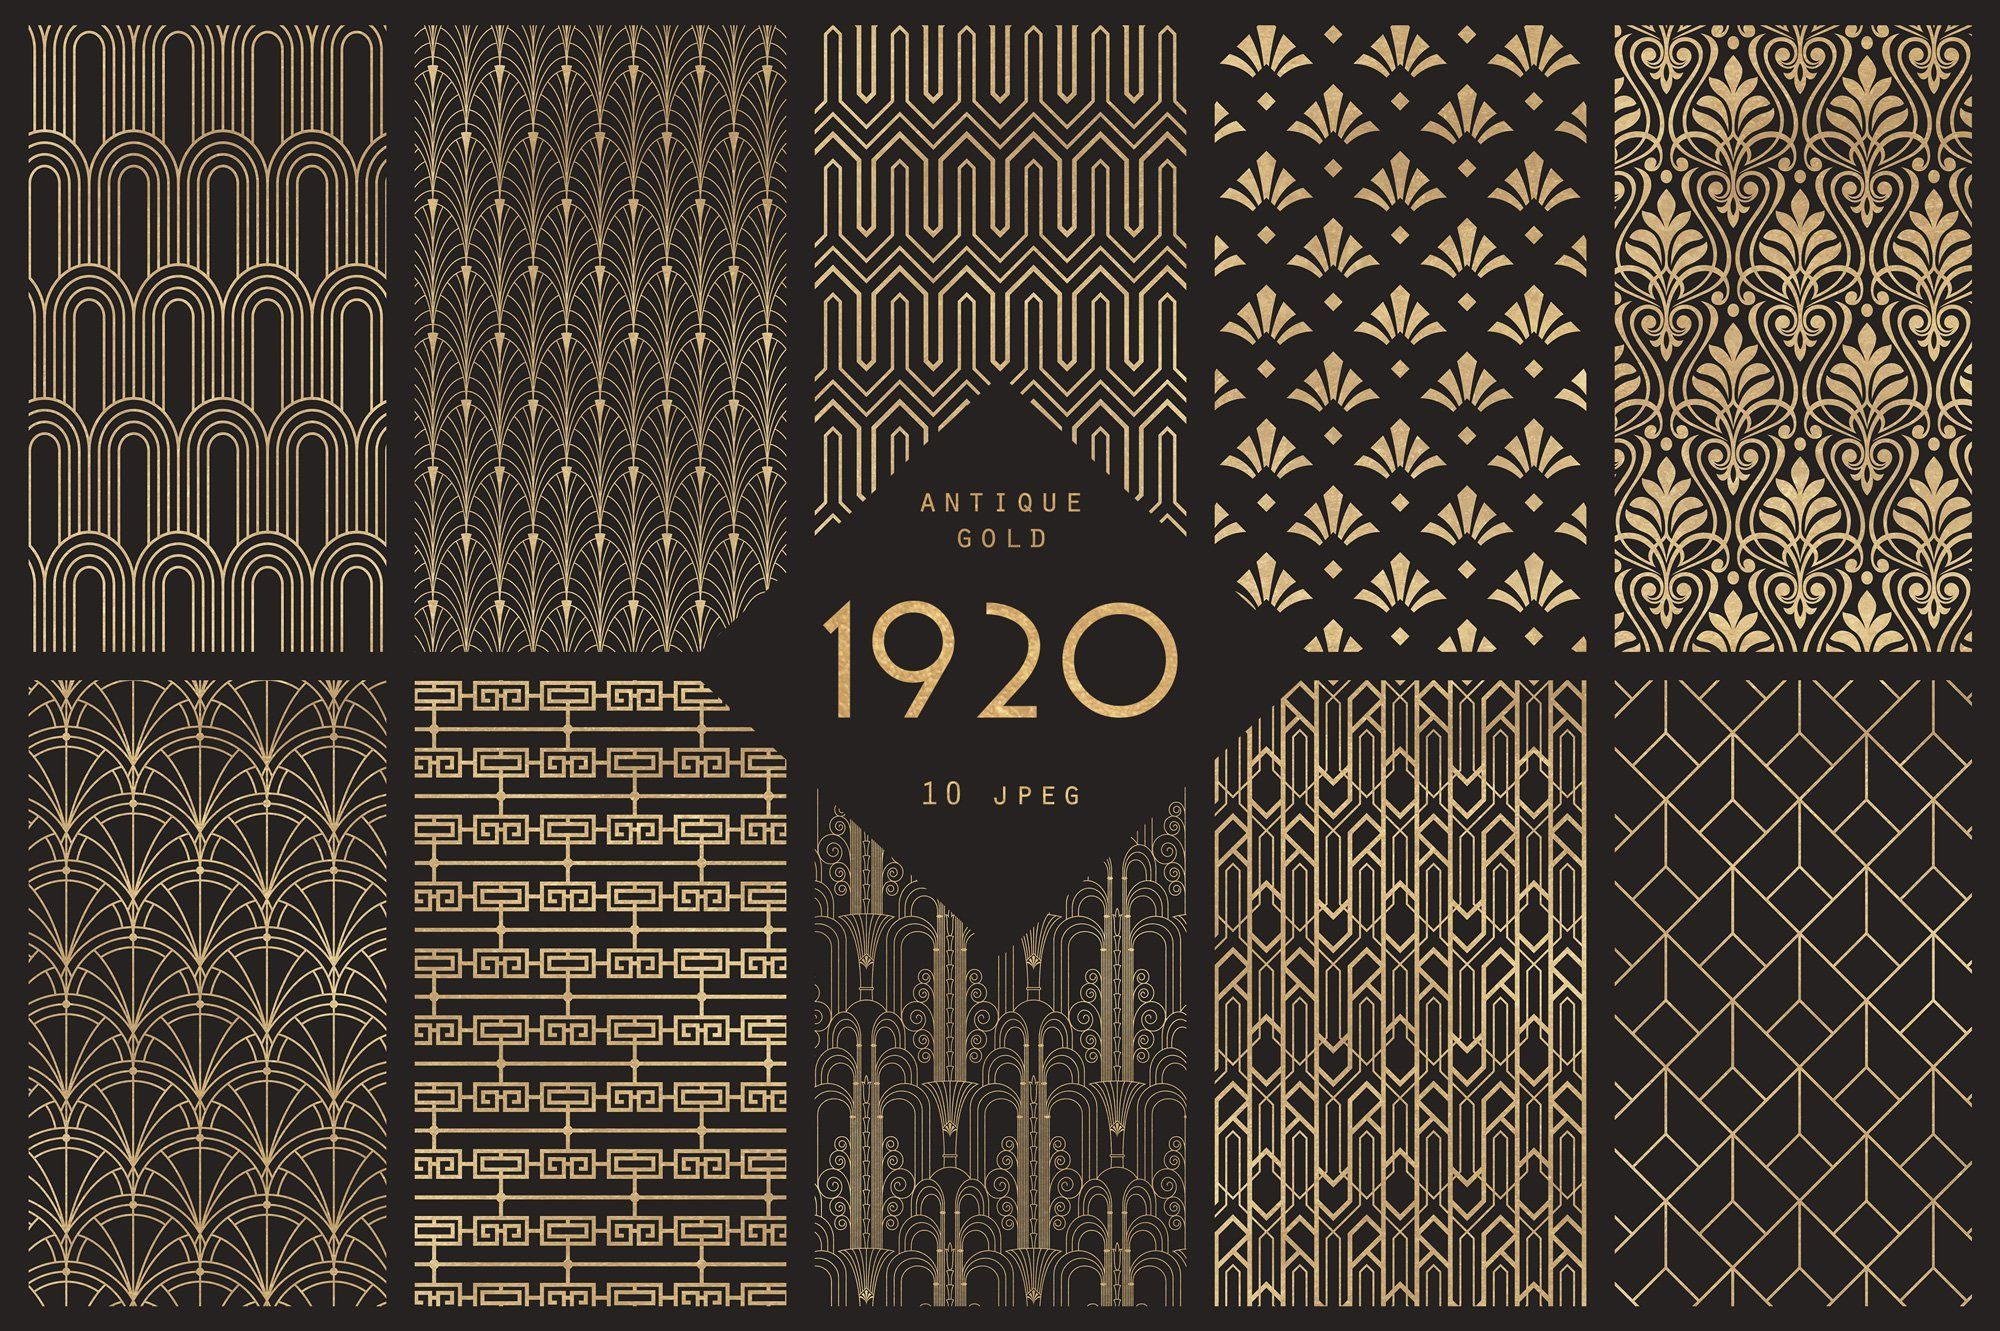 1920 Art Deco Seamless Patterns by The Paper Town on.